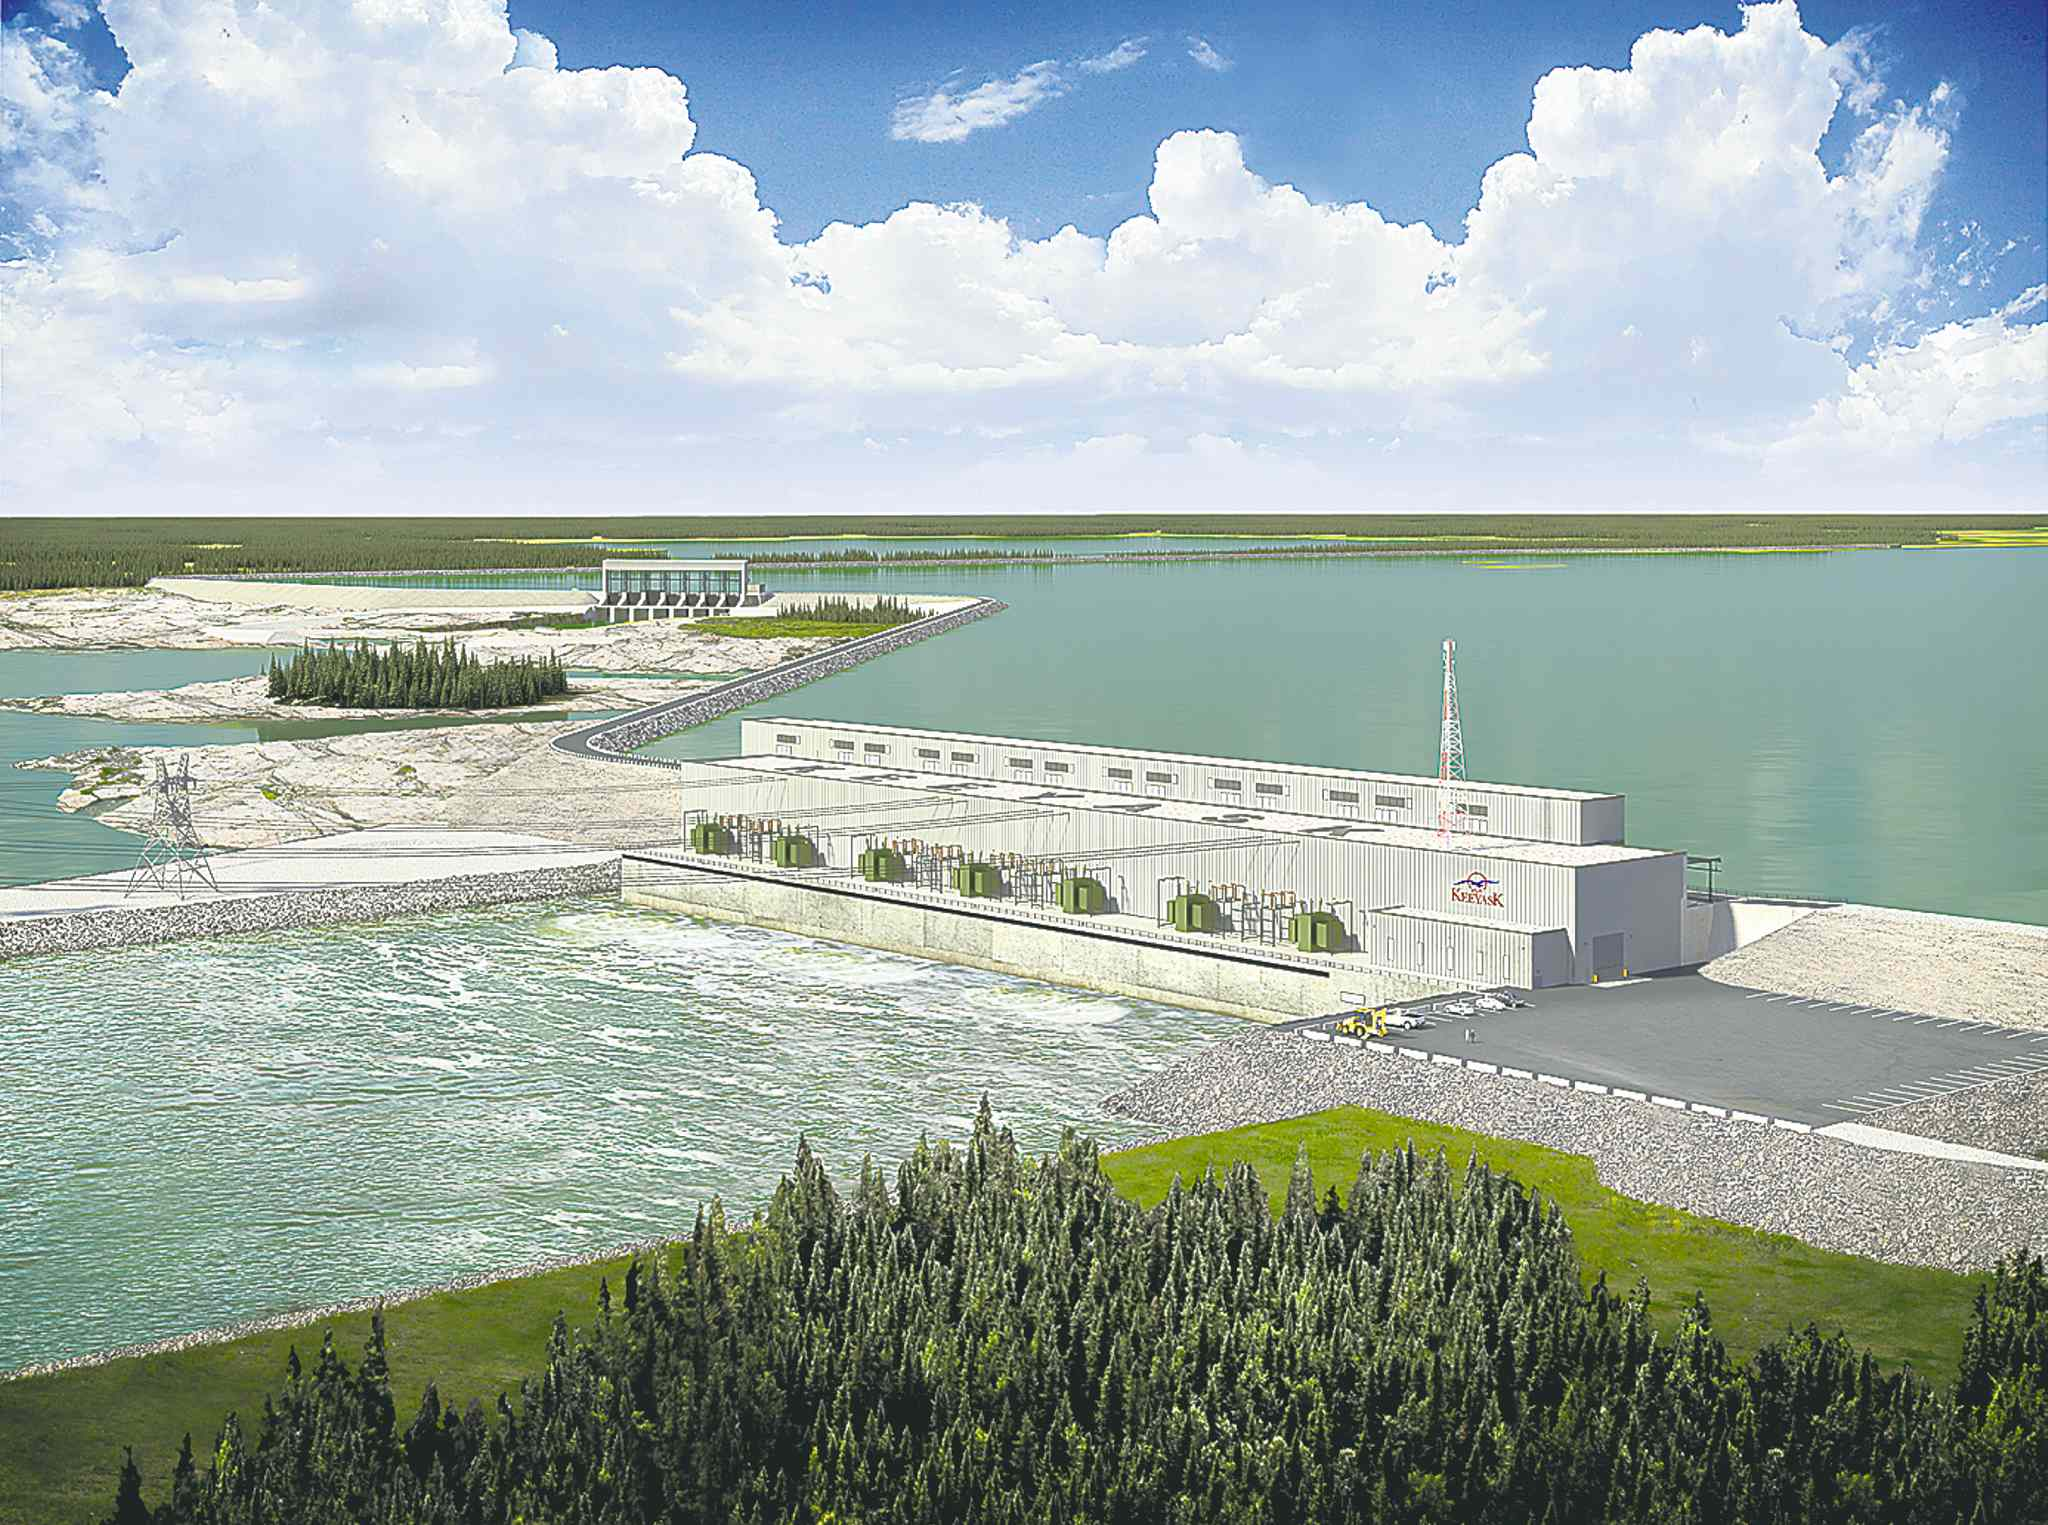 The MMF says it's ready to go to court to force Hydro to deal with Métis concerns over the proposed Keeyask generating station.